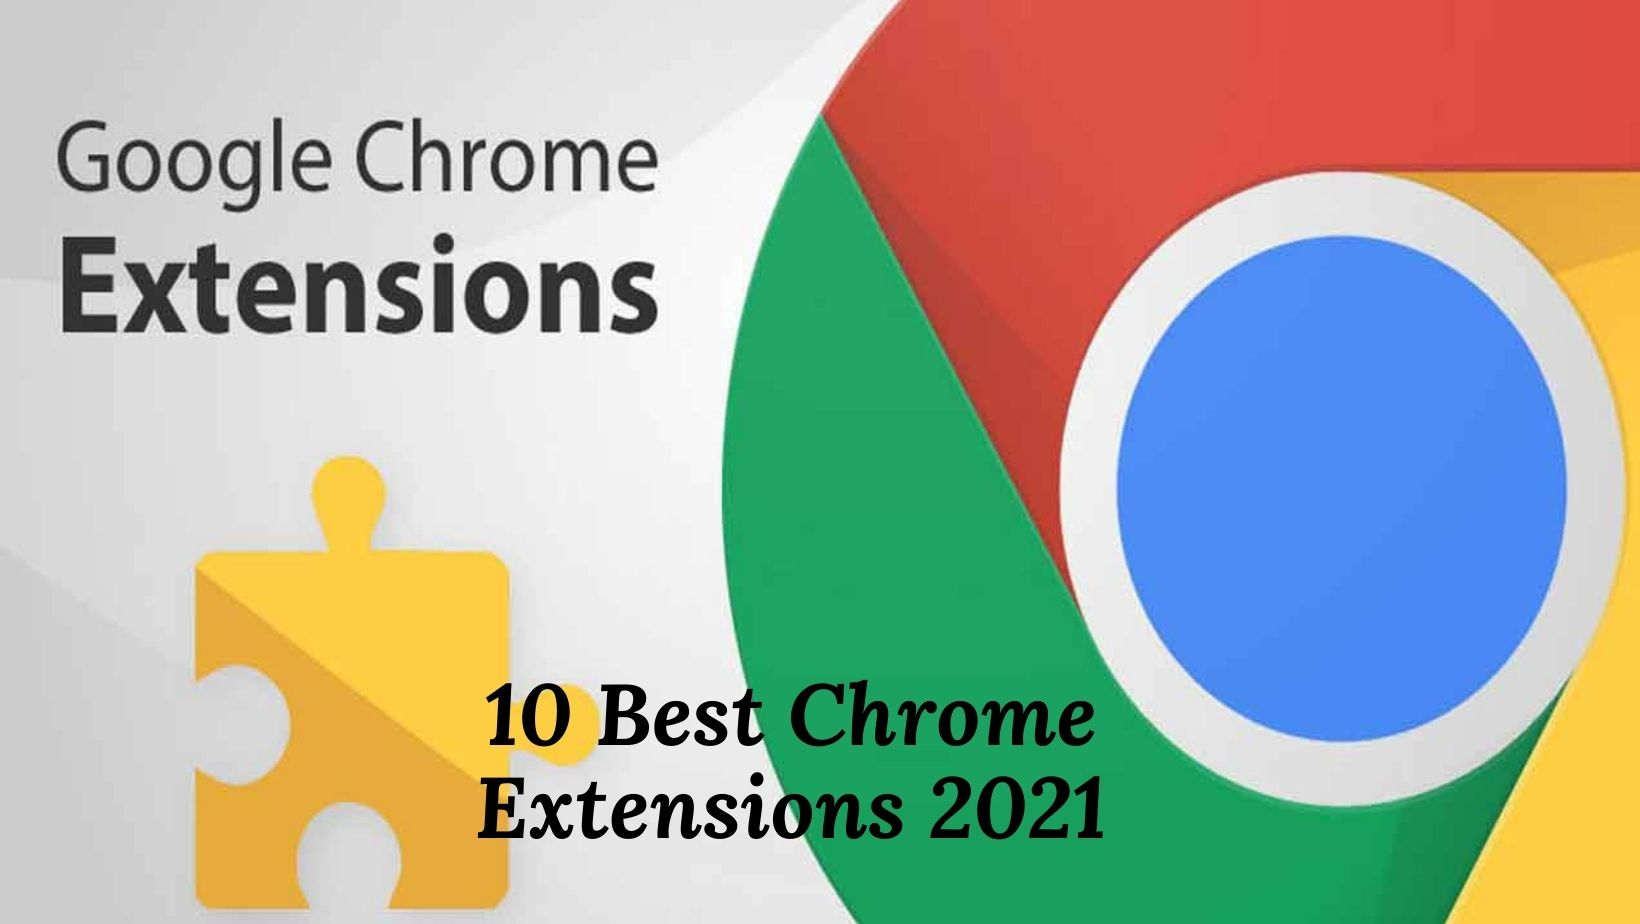 Top 10 Chrome Extensions 2021